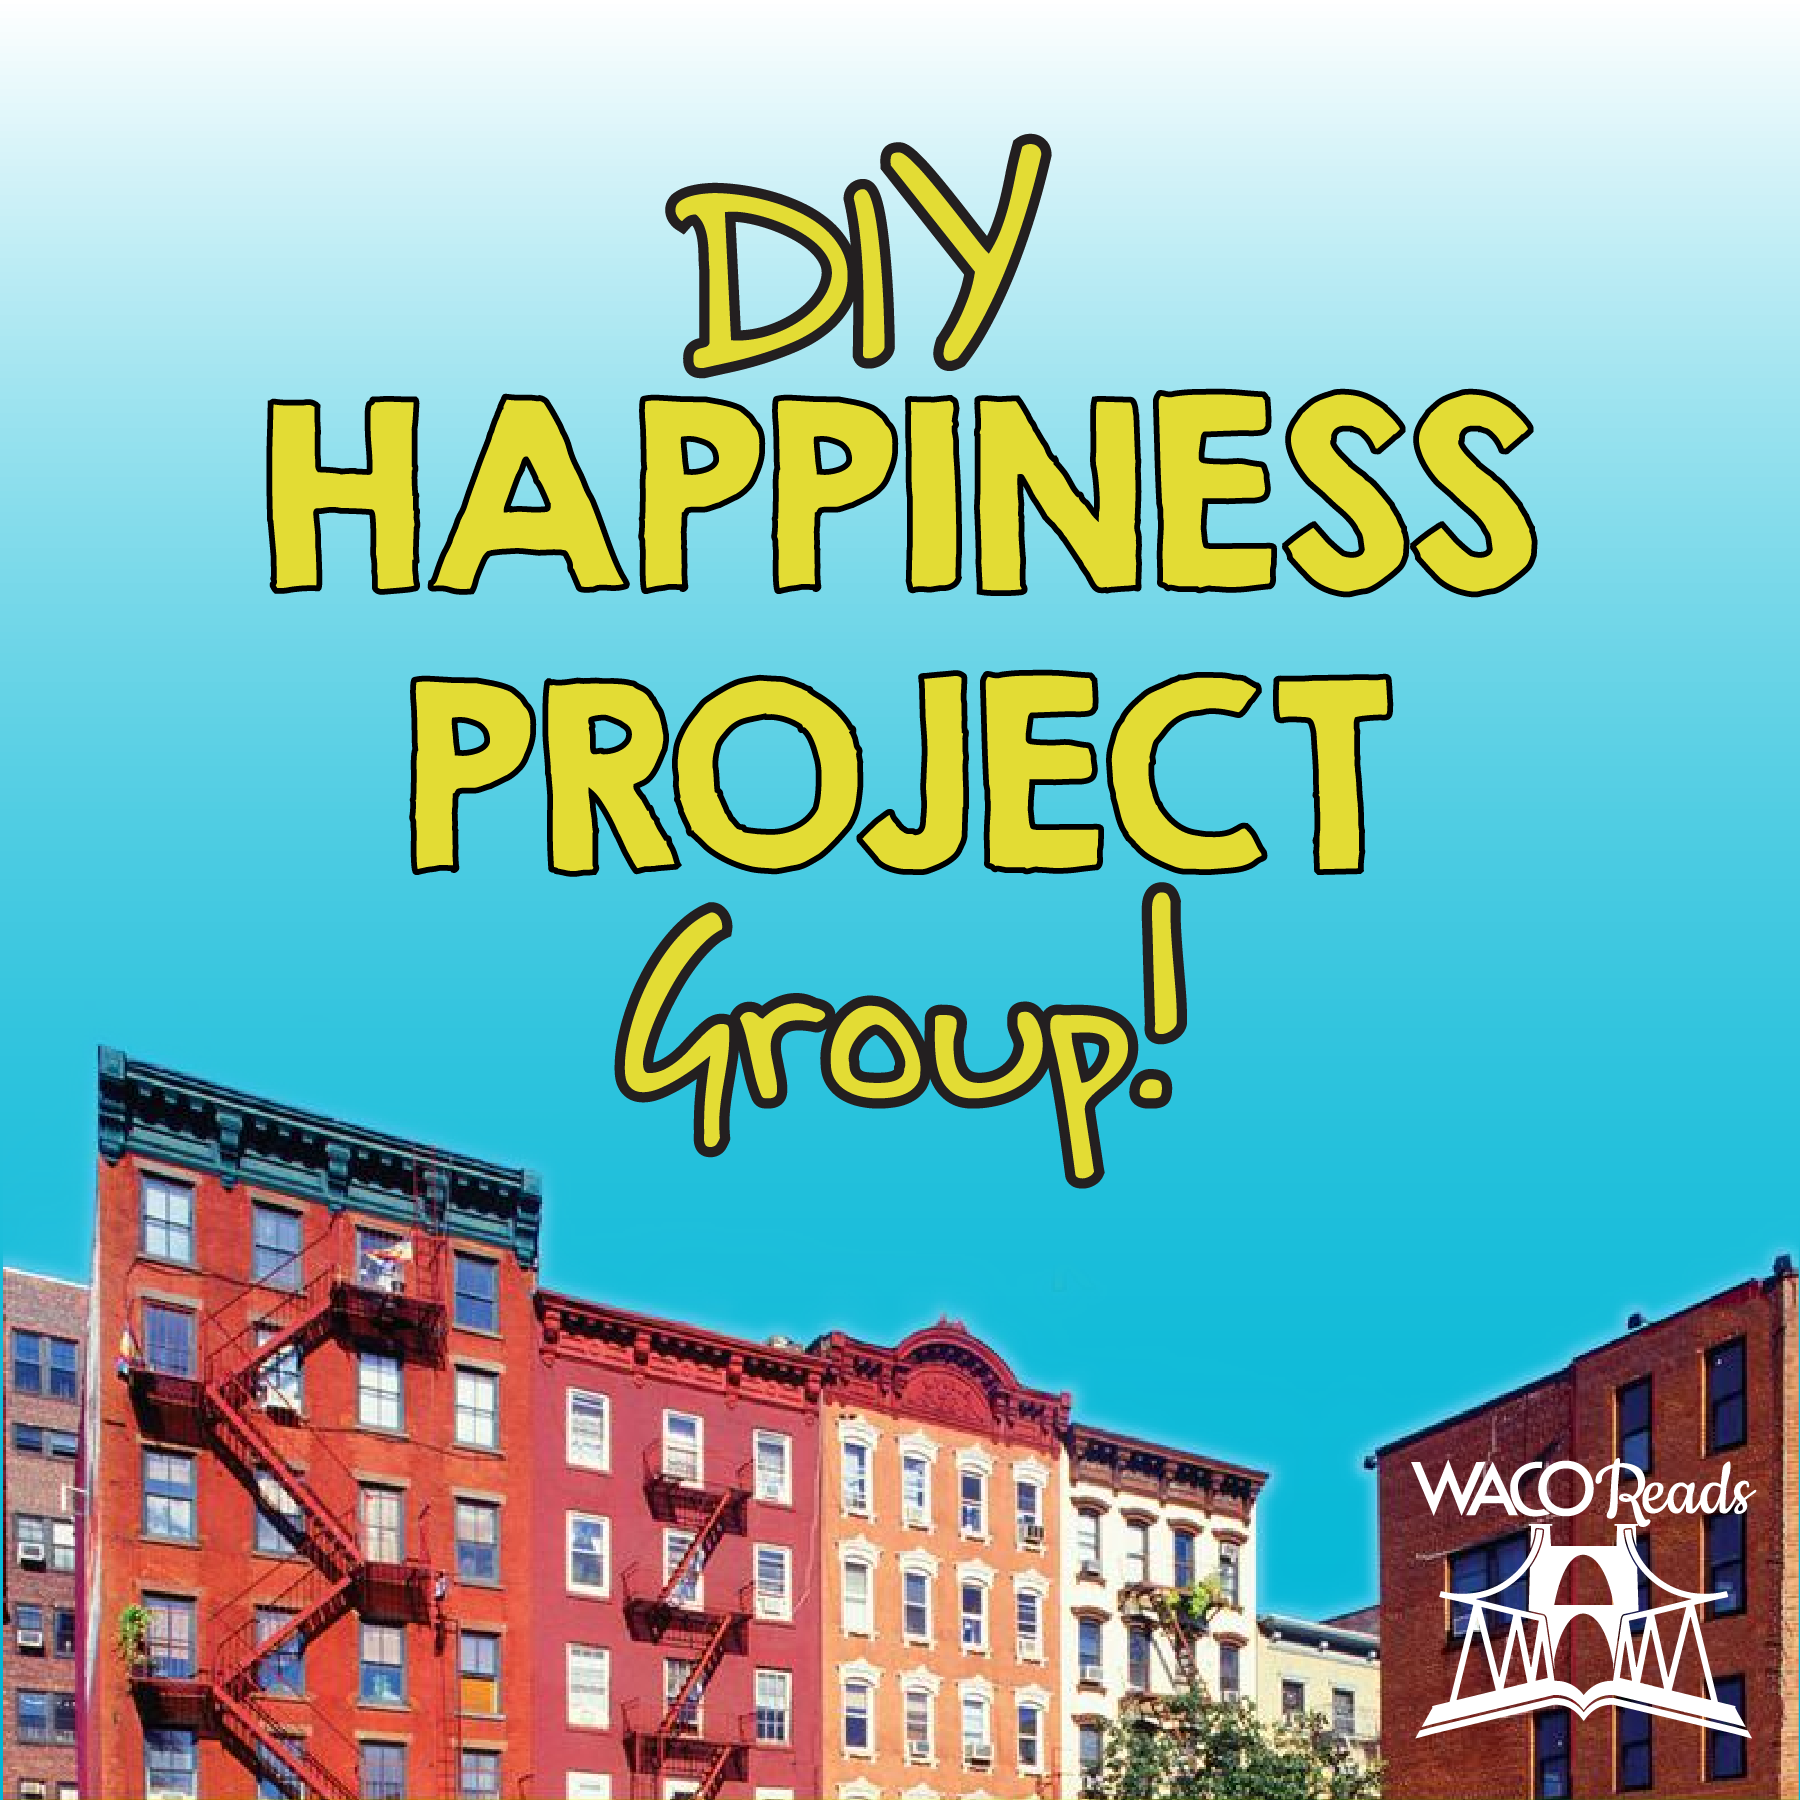 Happiness Project Group